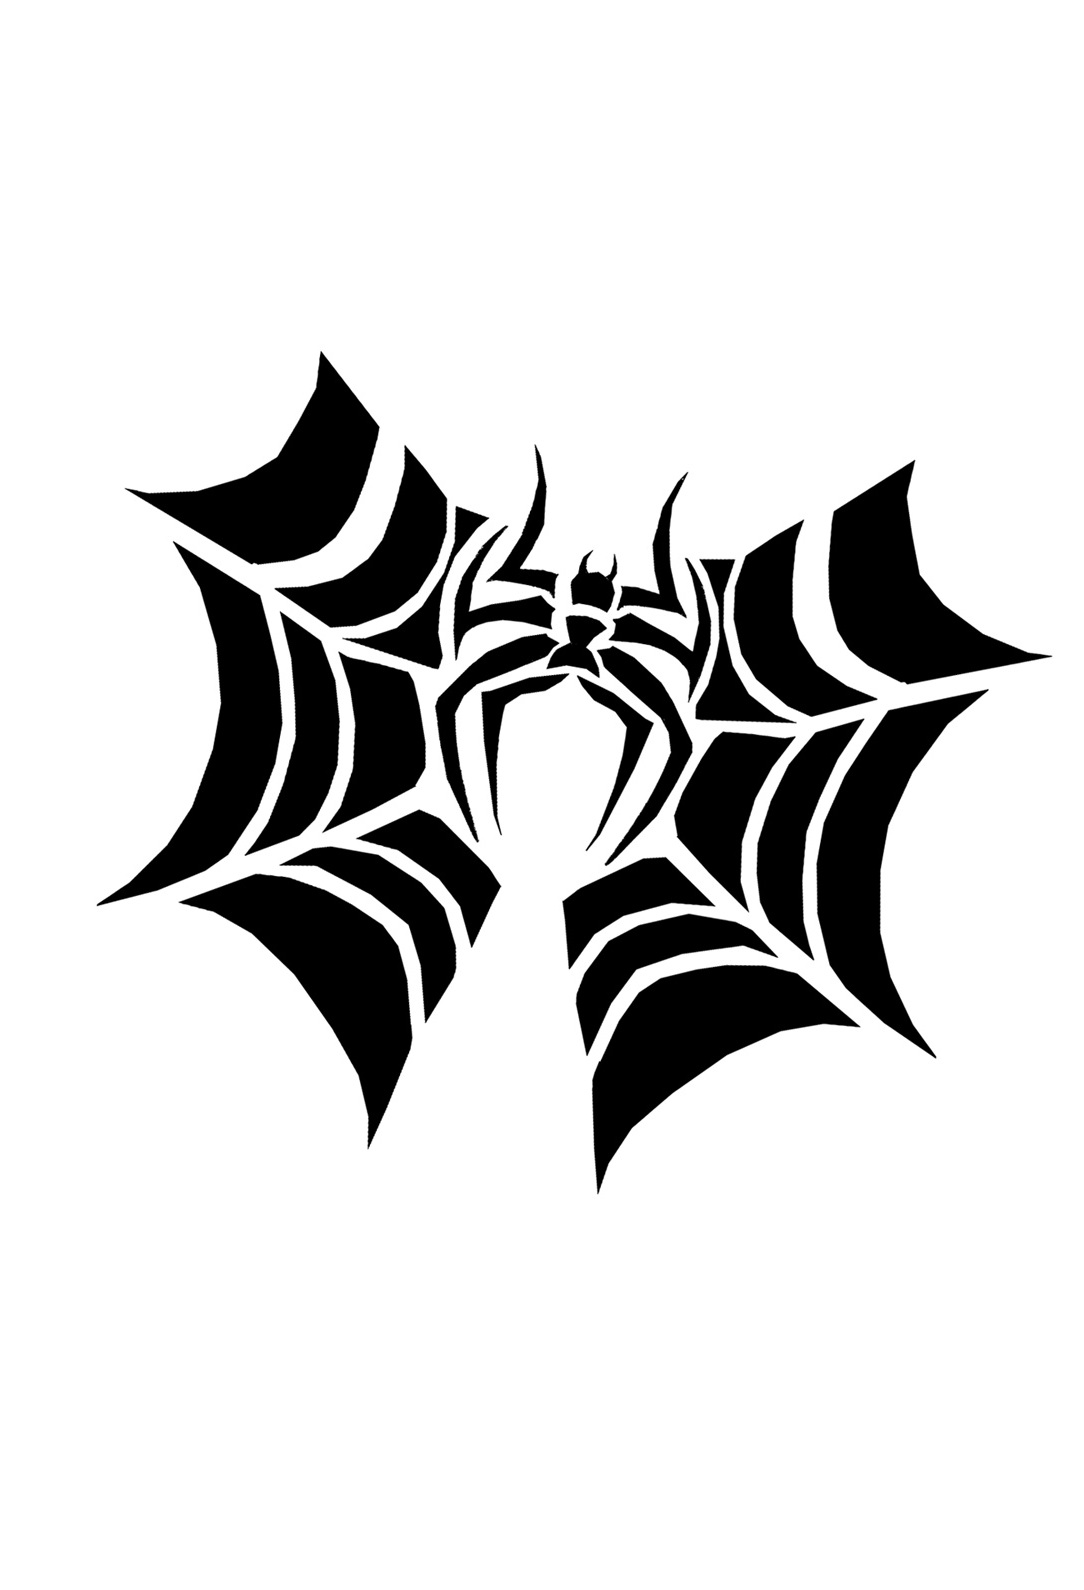 Spider bat pumpkin-carving-pattern-printable | Creative Ads and more…